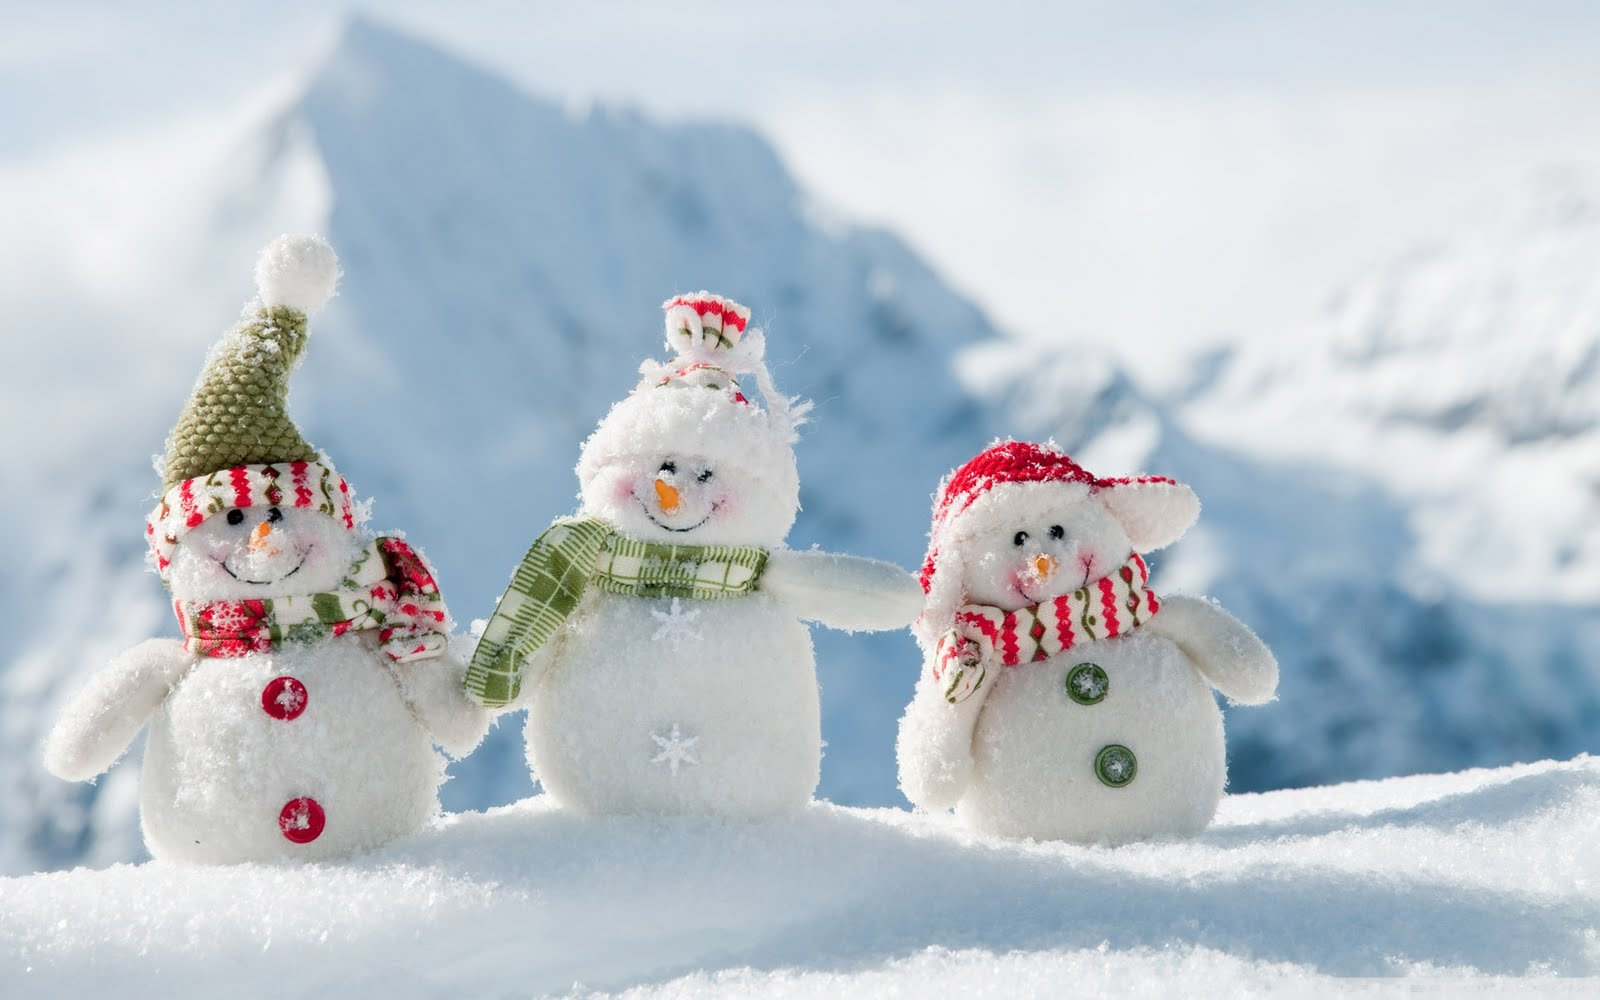 Merry Christmas Jingle Bells Exclusive HD Wallpapers #6050 - merry christmas jingle bells wallpapers